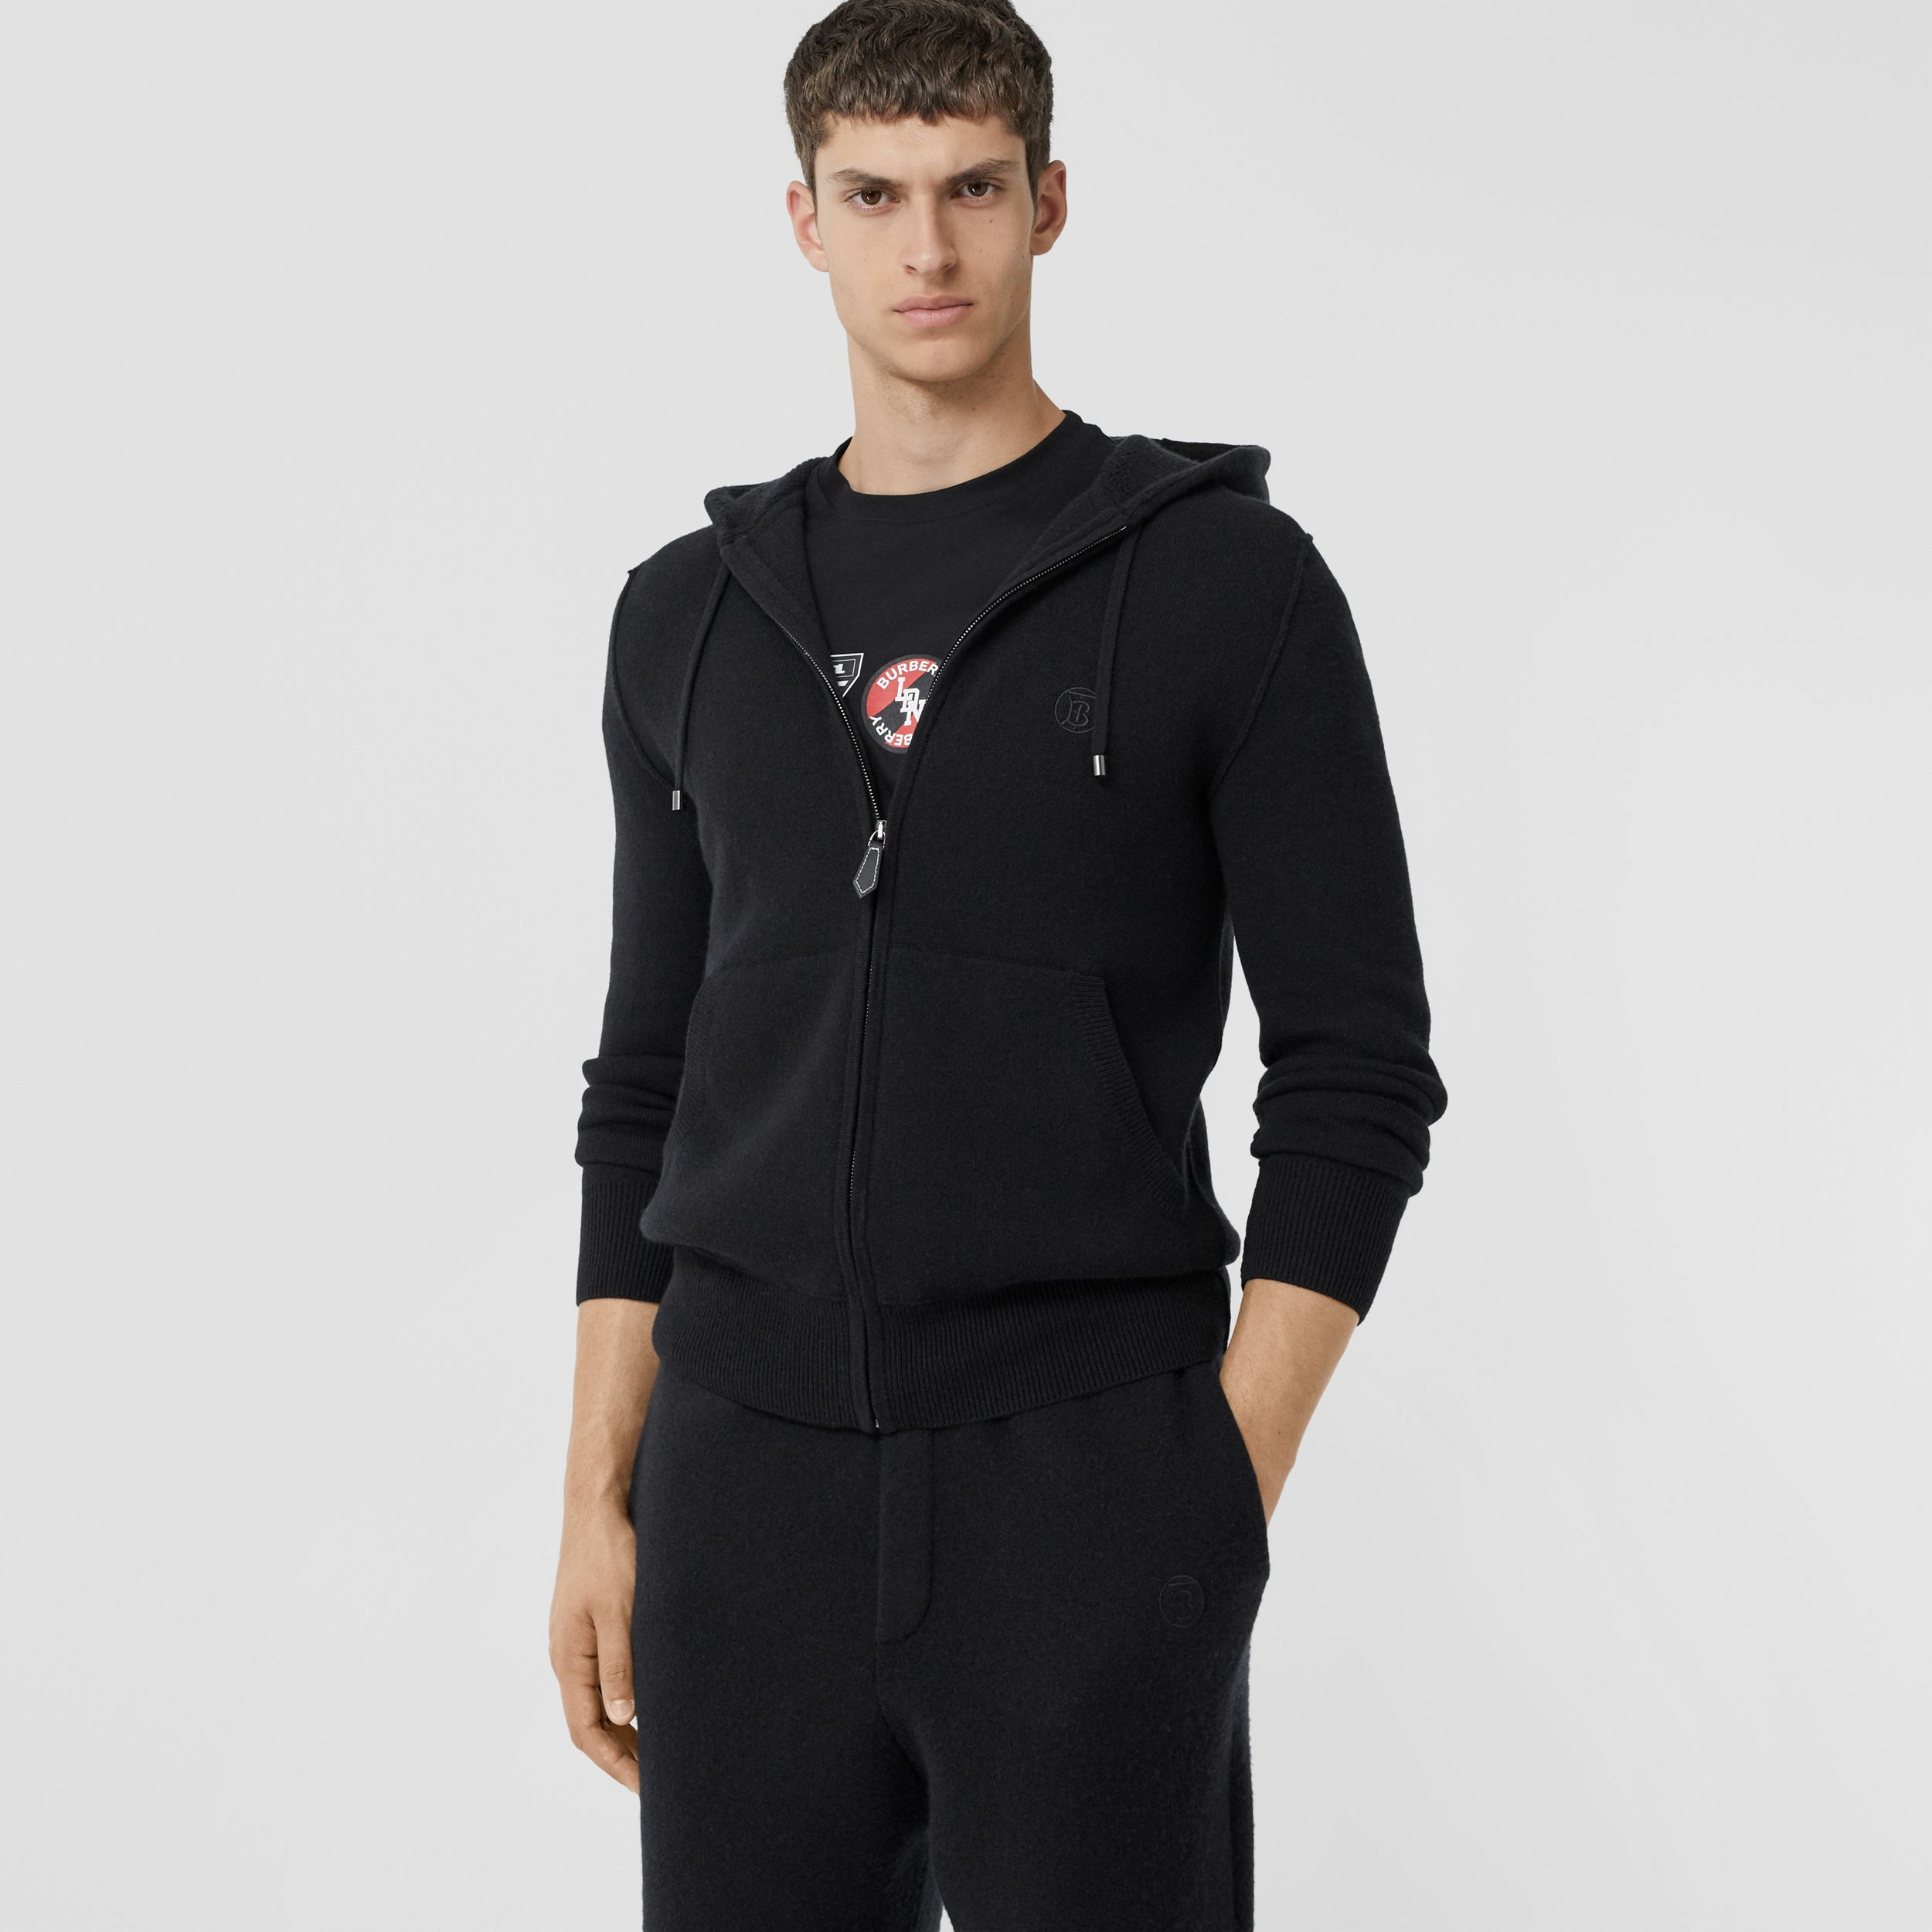 Monogram Motif Cashmere Blend Hooded Top in Black - Men | Burberry - 1